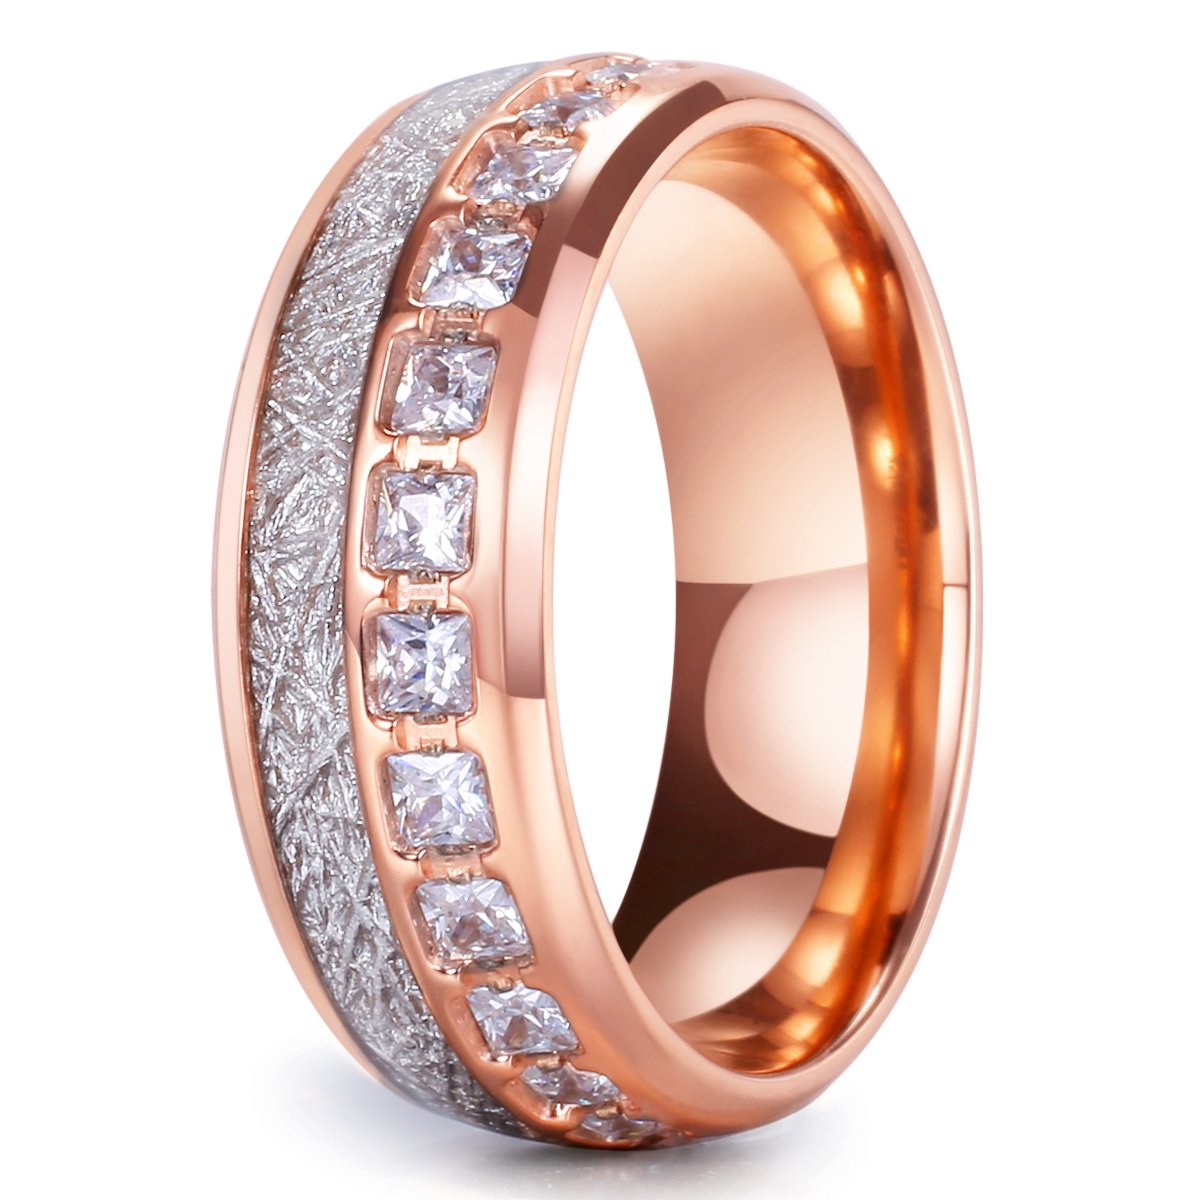 King Will Meteor Mens 8mm Titanium Rose Gold//Silver//Blue Domed Imitated Meteorite Wedding Band Cubic Zirconia